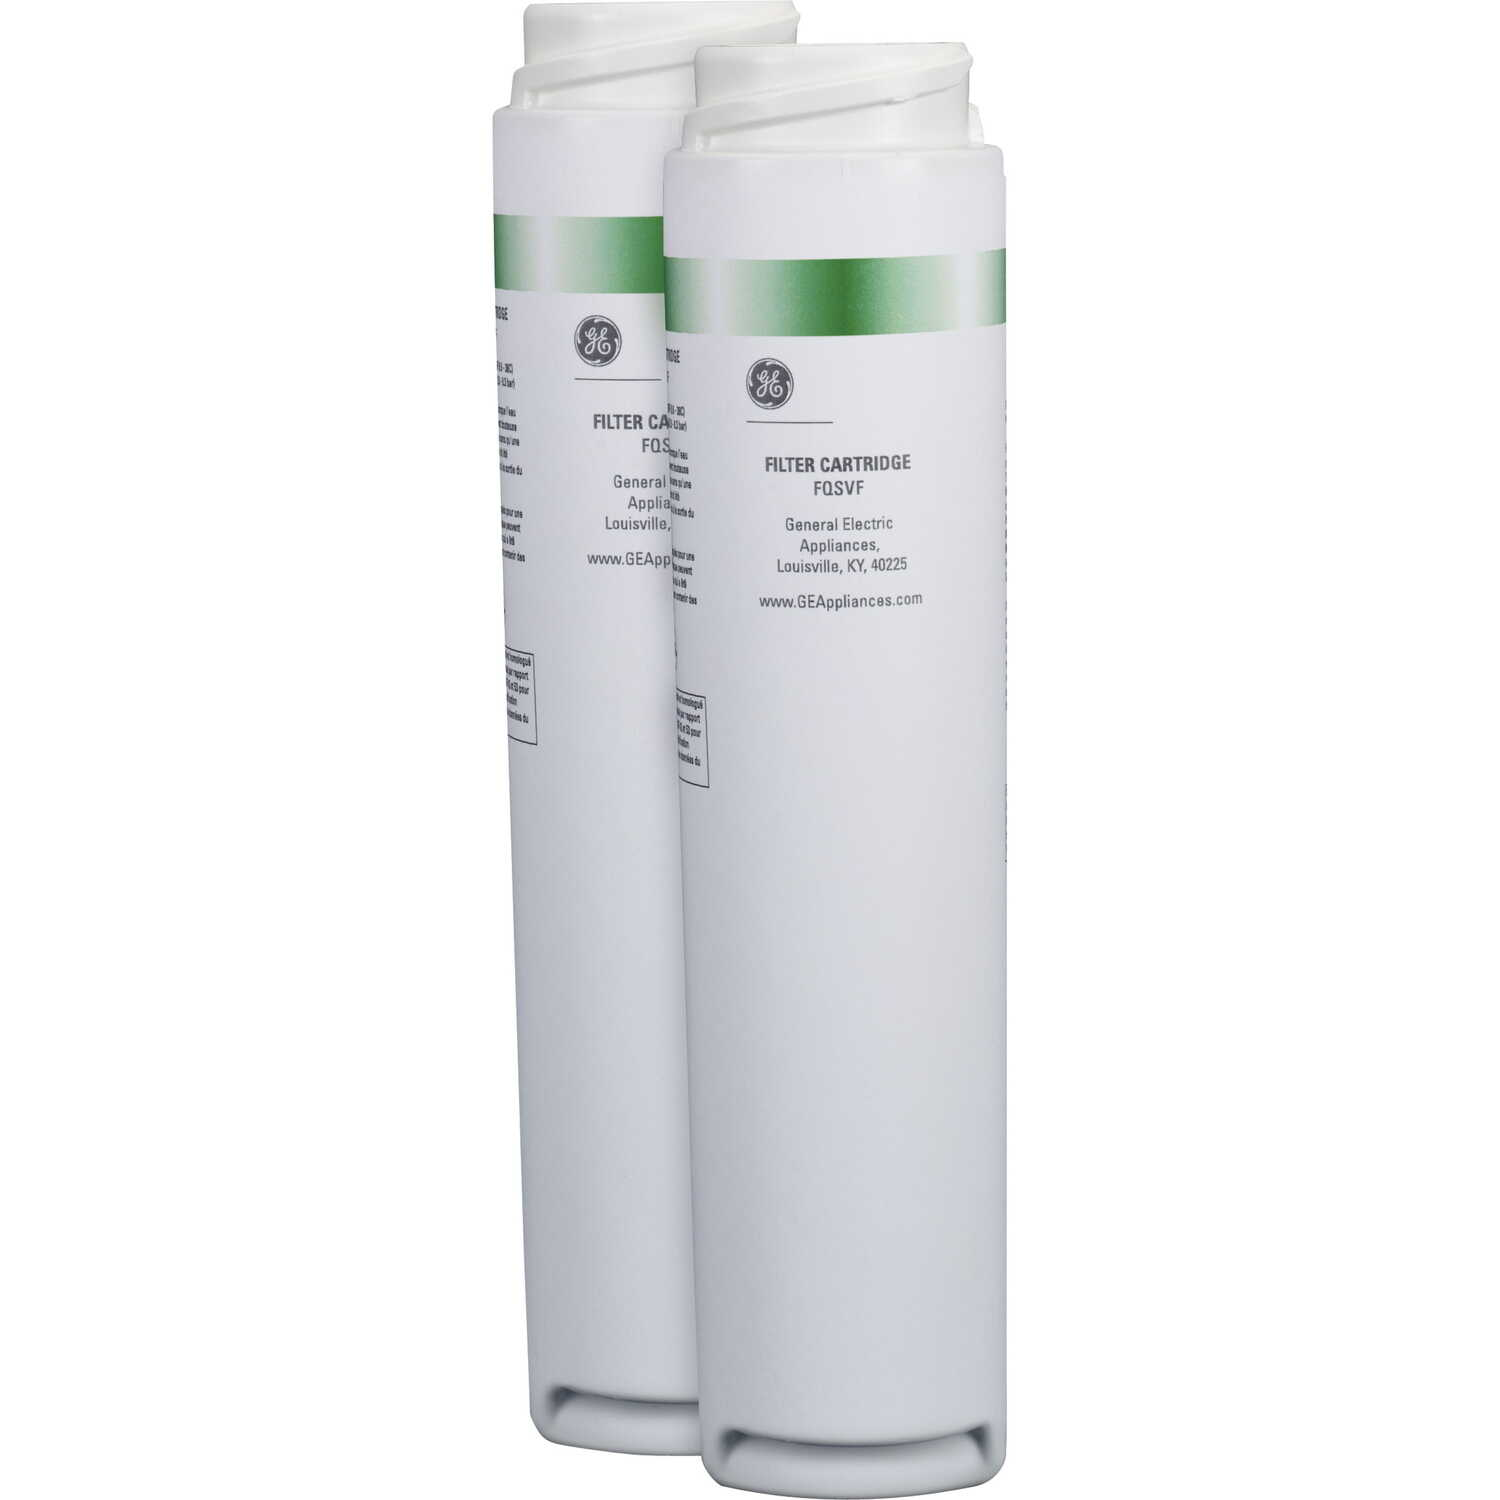 GE Appliances  Dual Stage Drinking Water  Replacement Water Filter  For Whole House 160 gal.